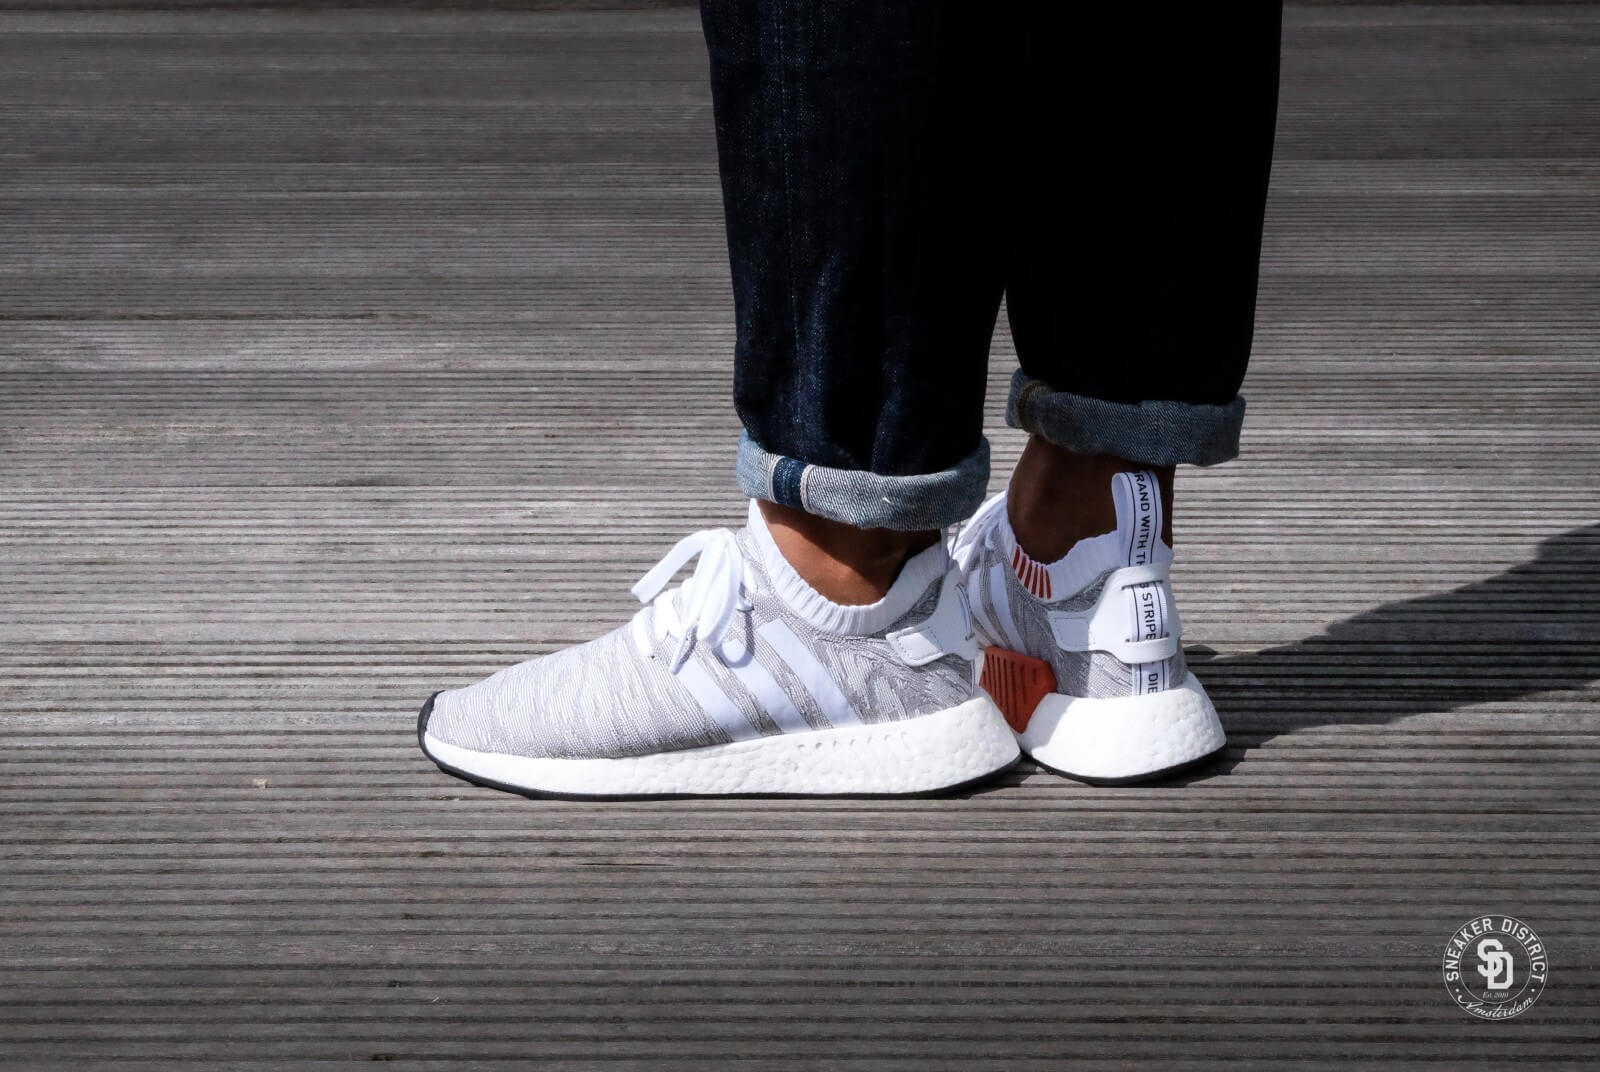 Adidas NMD R2 PK Footwear White Core Black BY9410